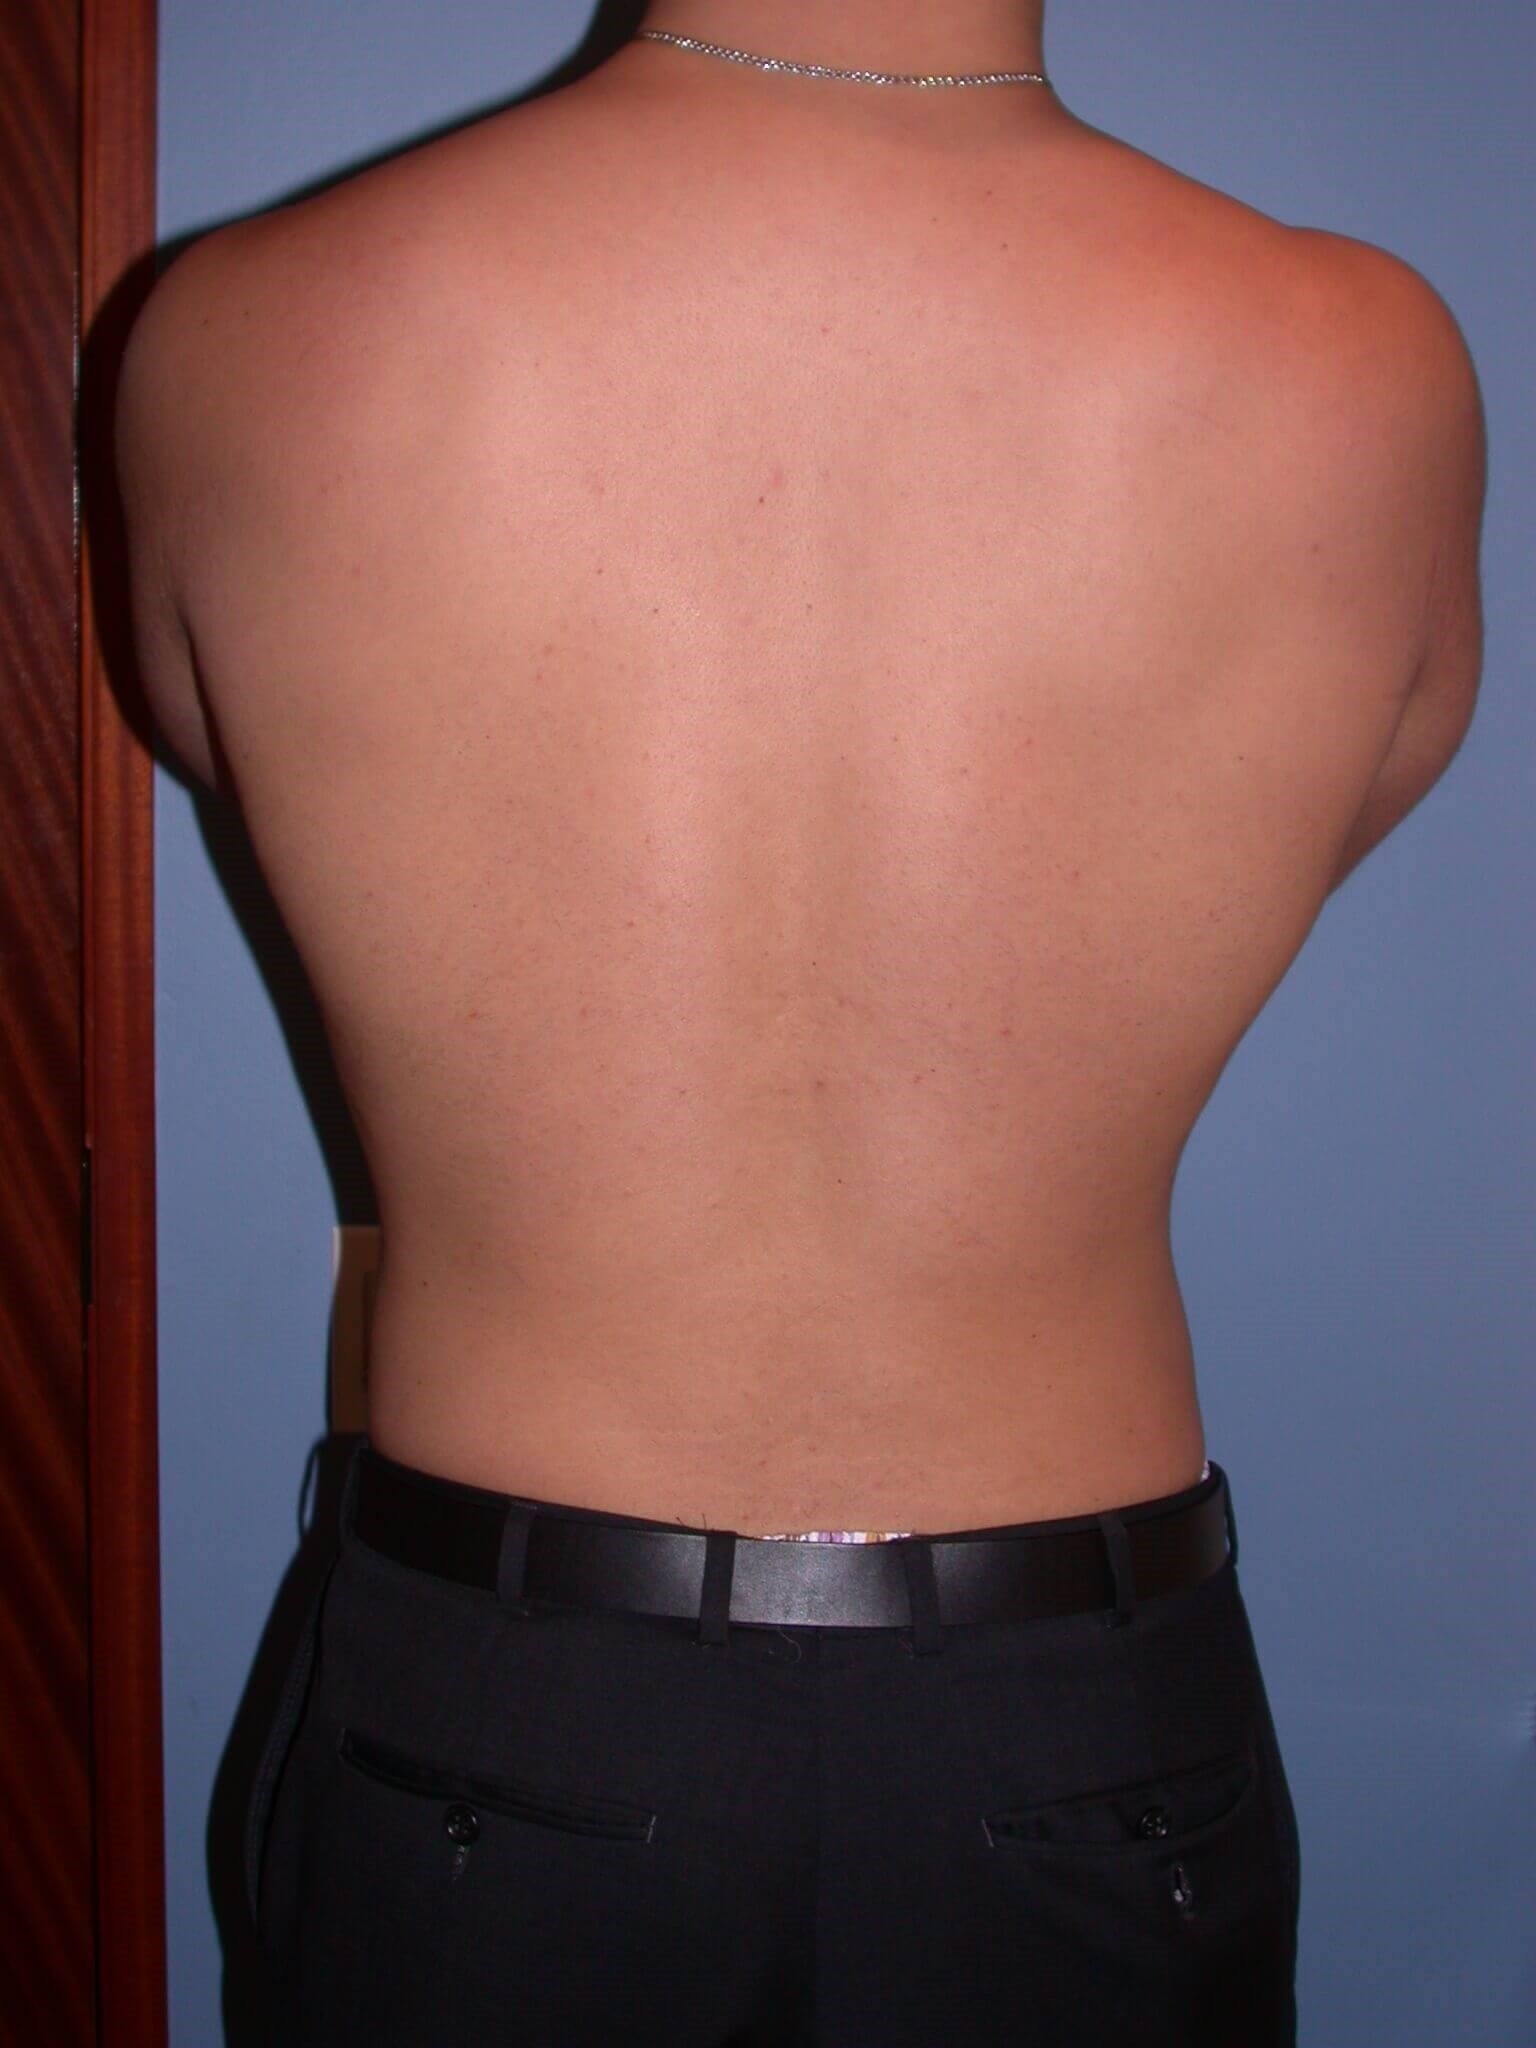 Gynecomastia/Lipo Back View After